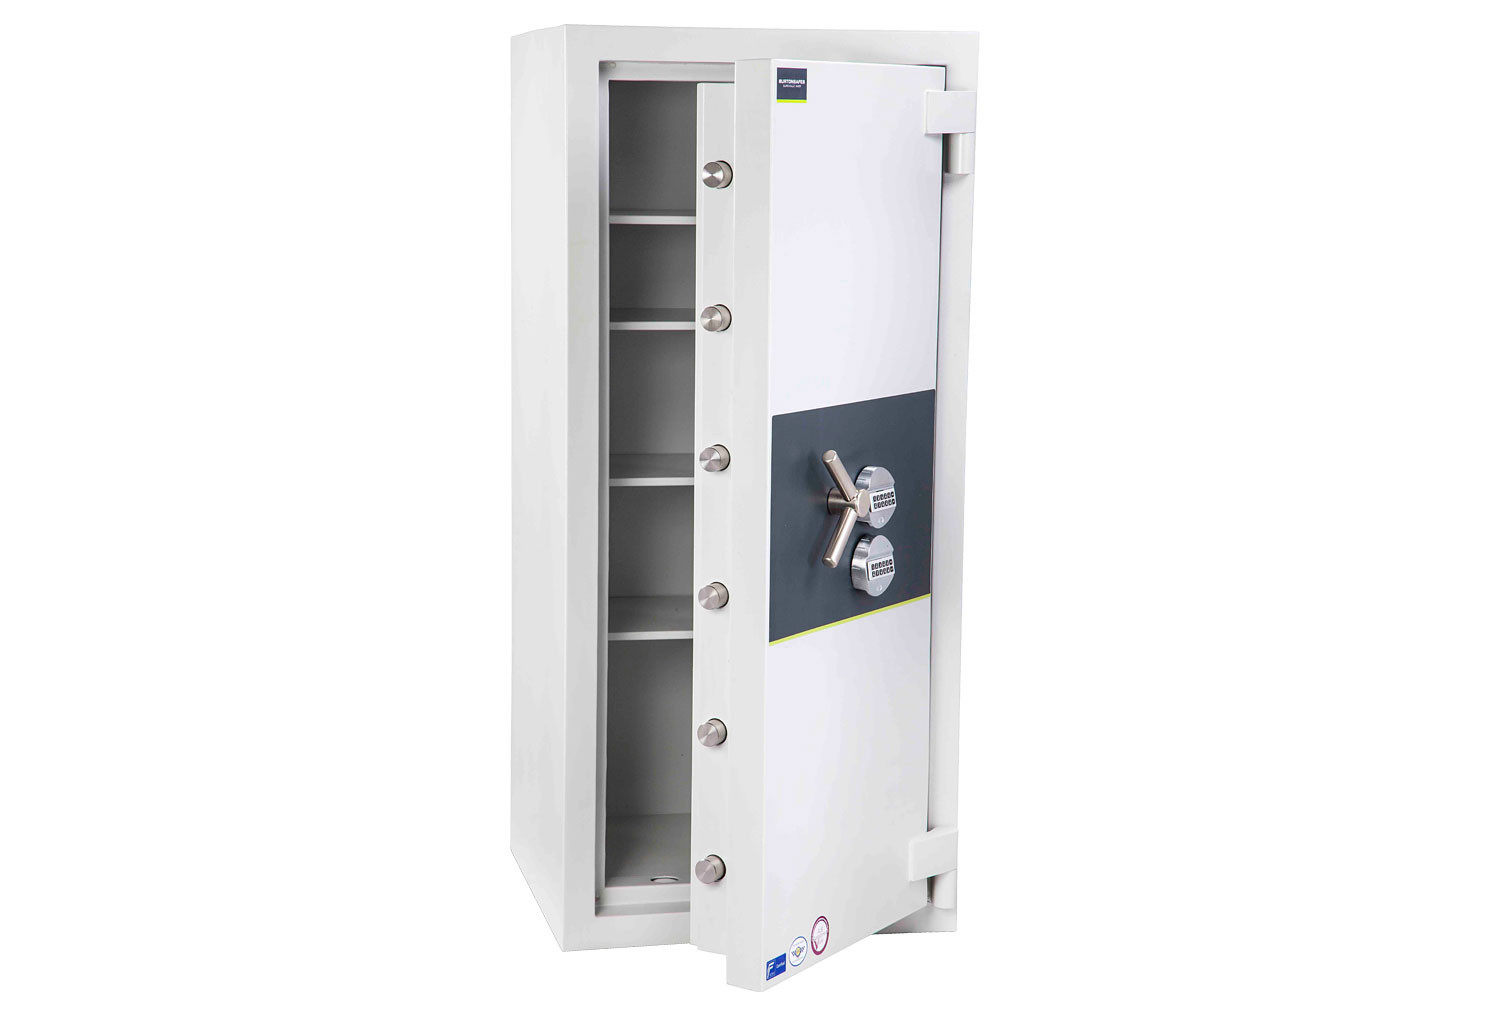 Burton Eurovault Aver Grade 5 Size 4 Safe With Dual Electronic Lock (320ltrs)